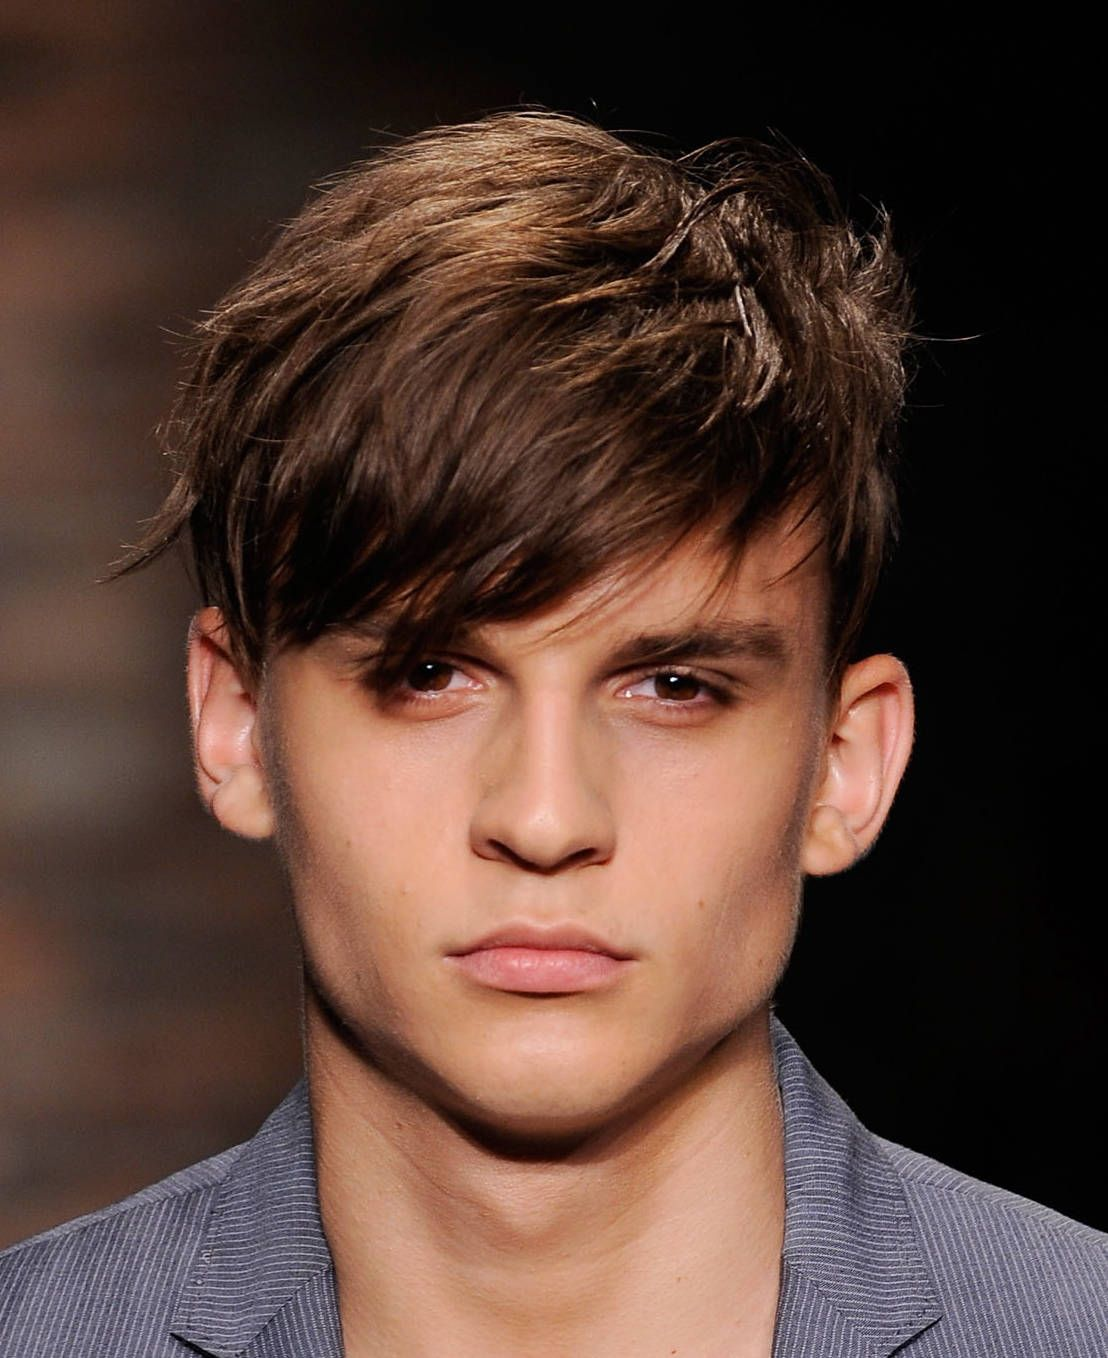 15 Shaggy Hairstyles For Men: 15 Hottest Long-On-Top Hairstyles For Men